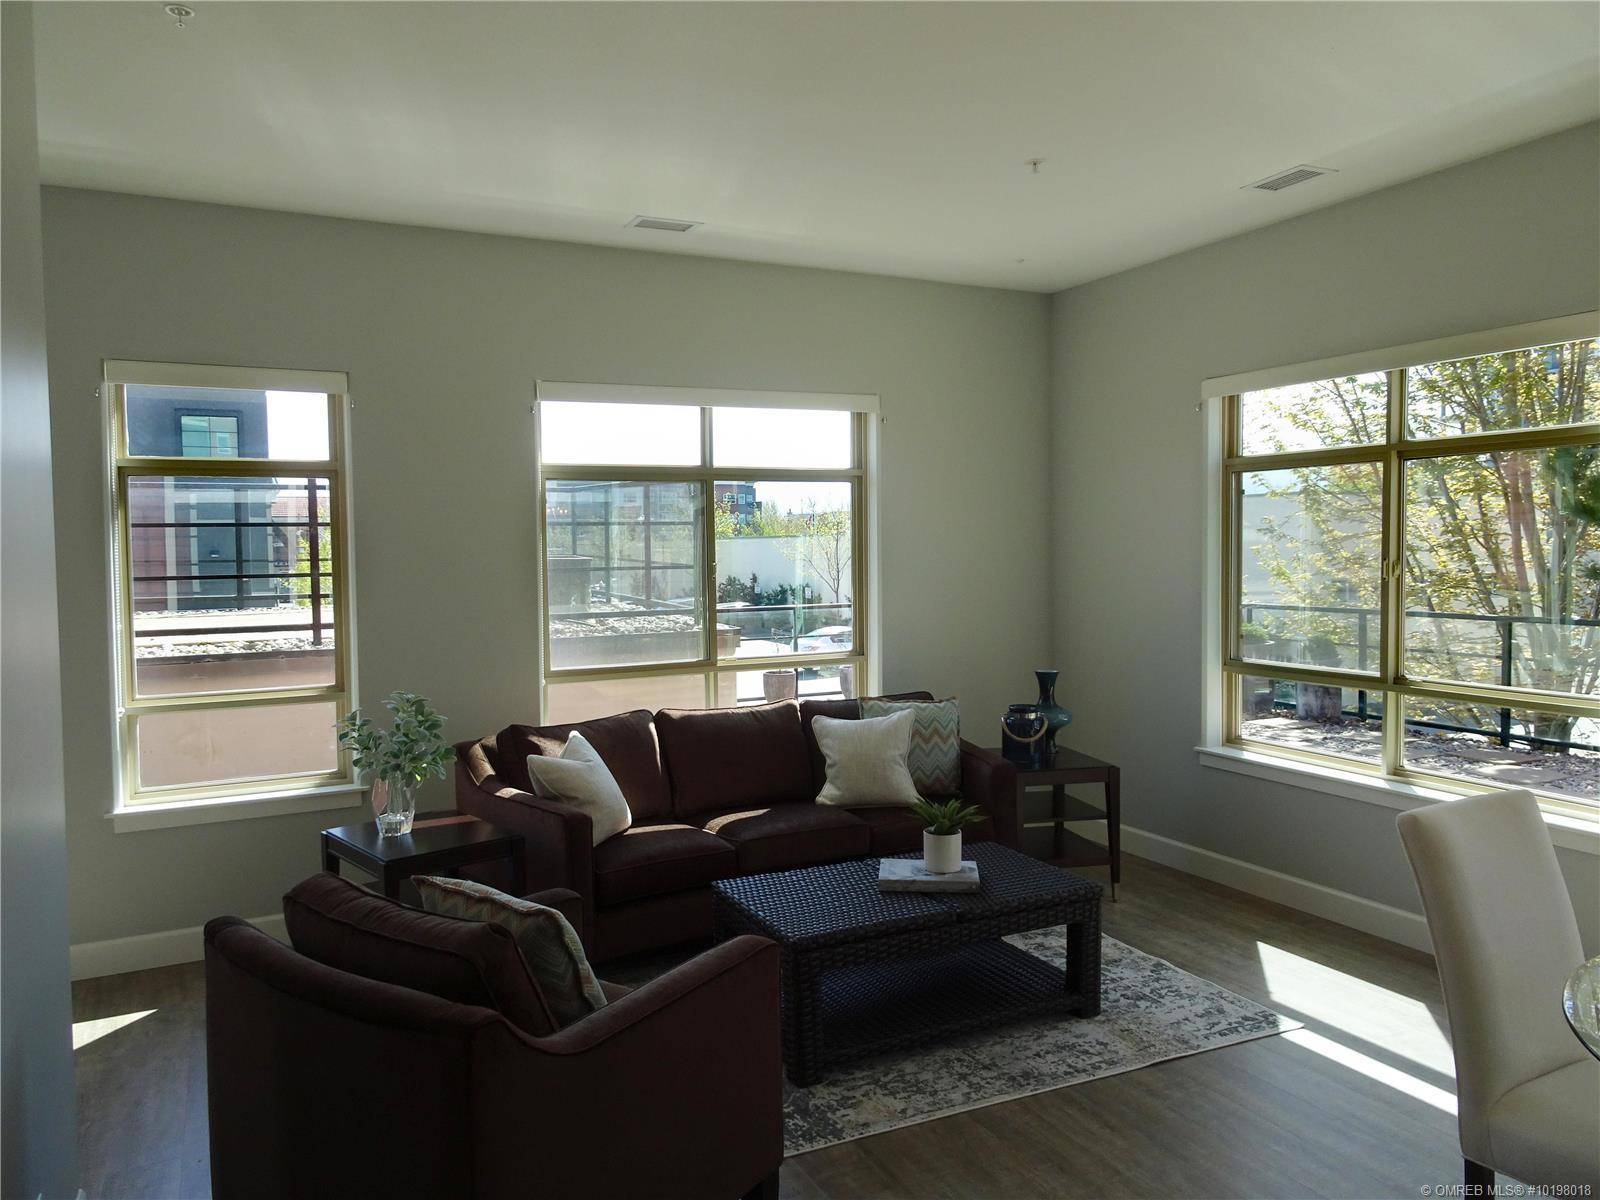 Condo for sale at 457 West Ave Unit 102 Kelowna British Columbia - MLS: 10198018